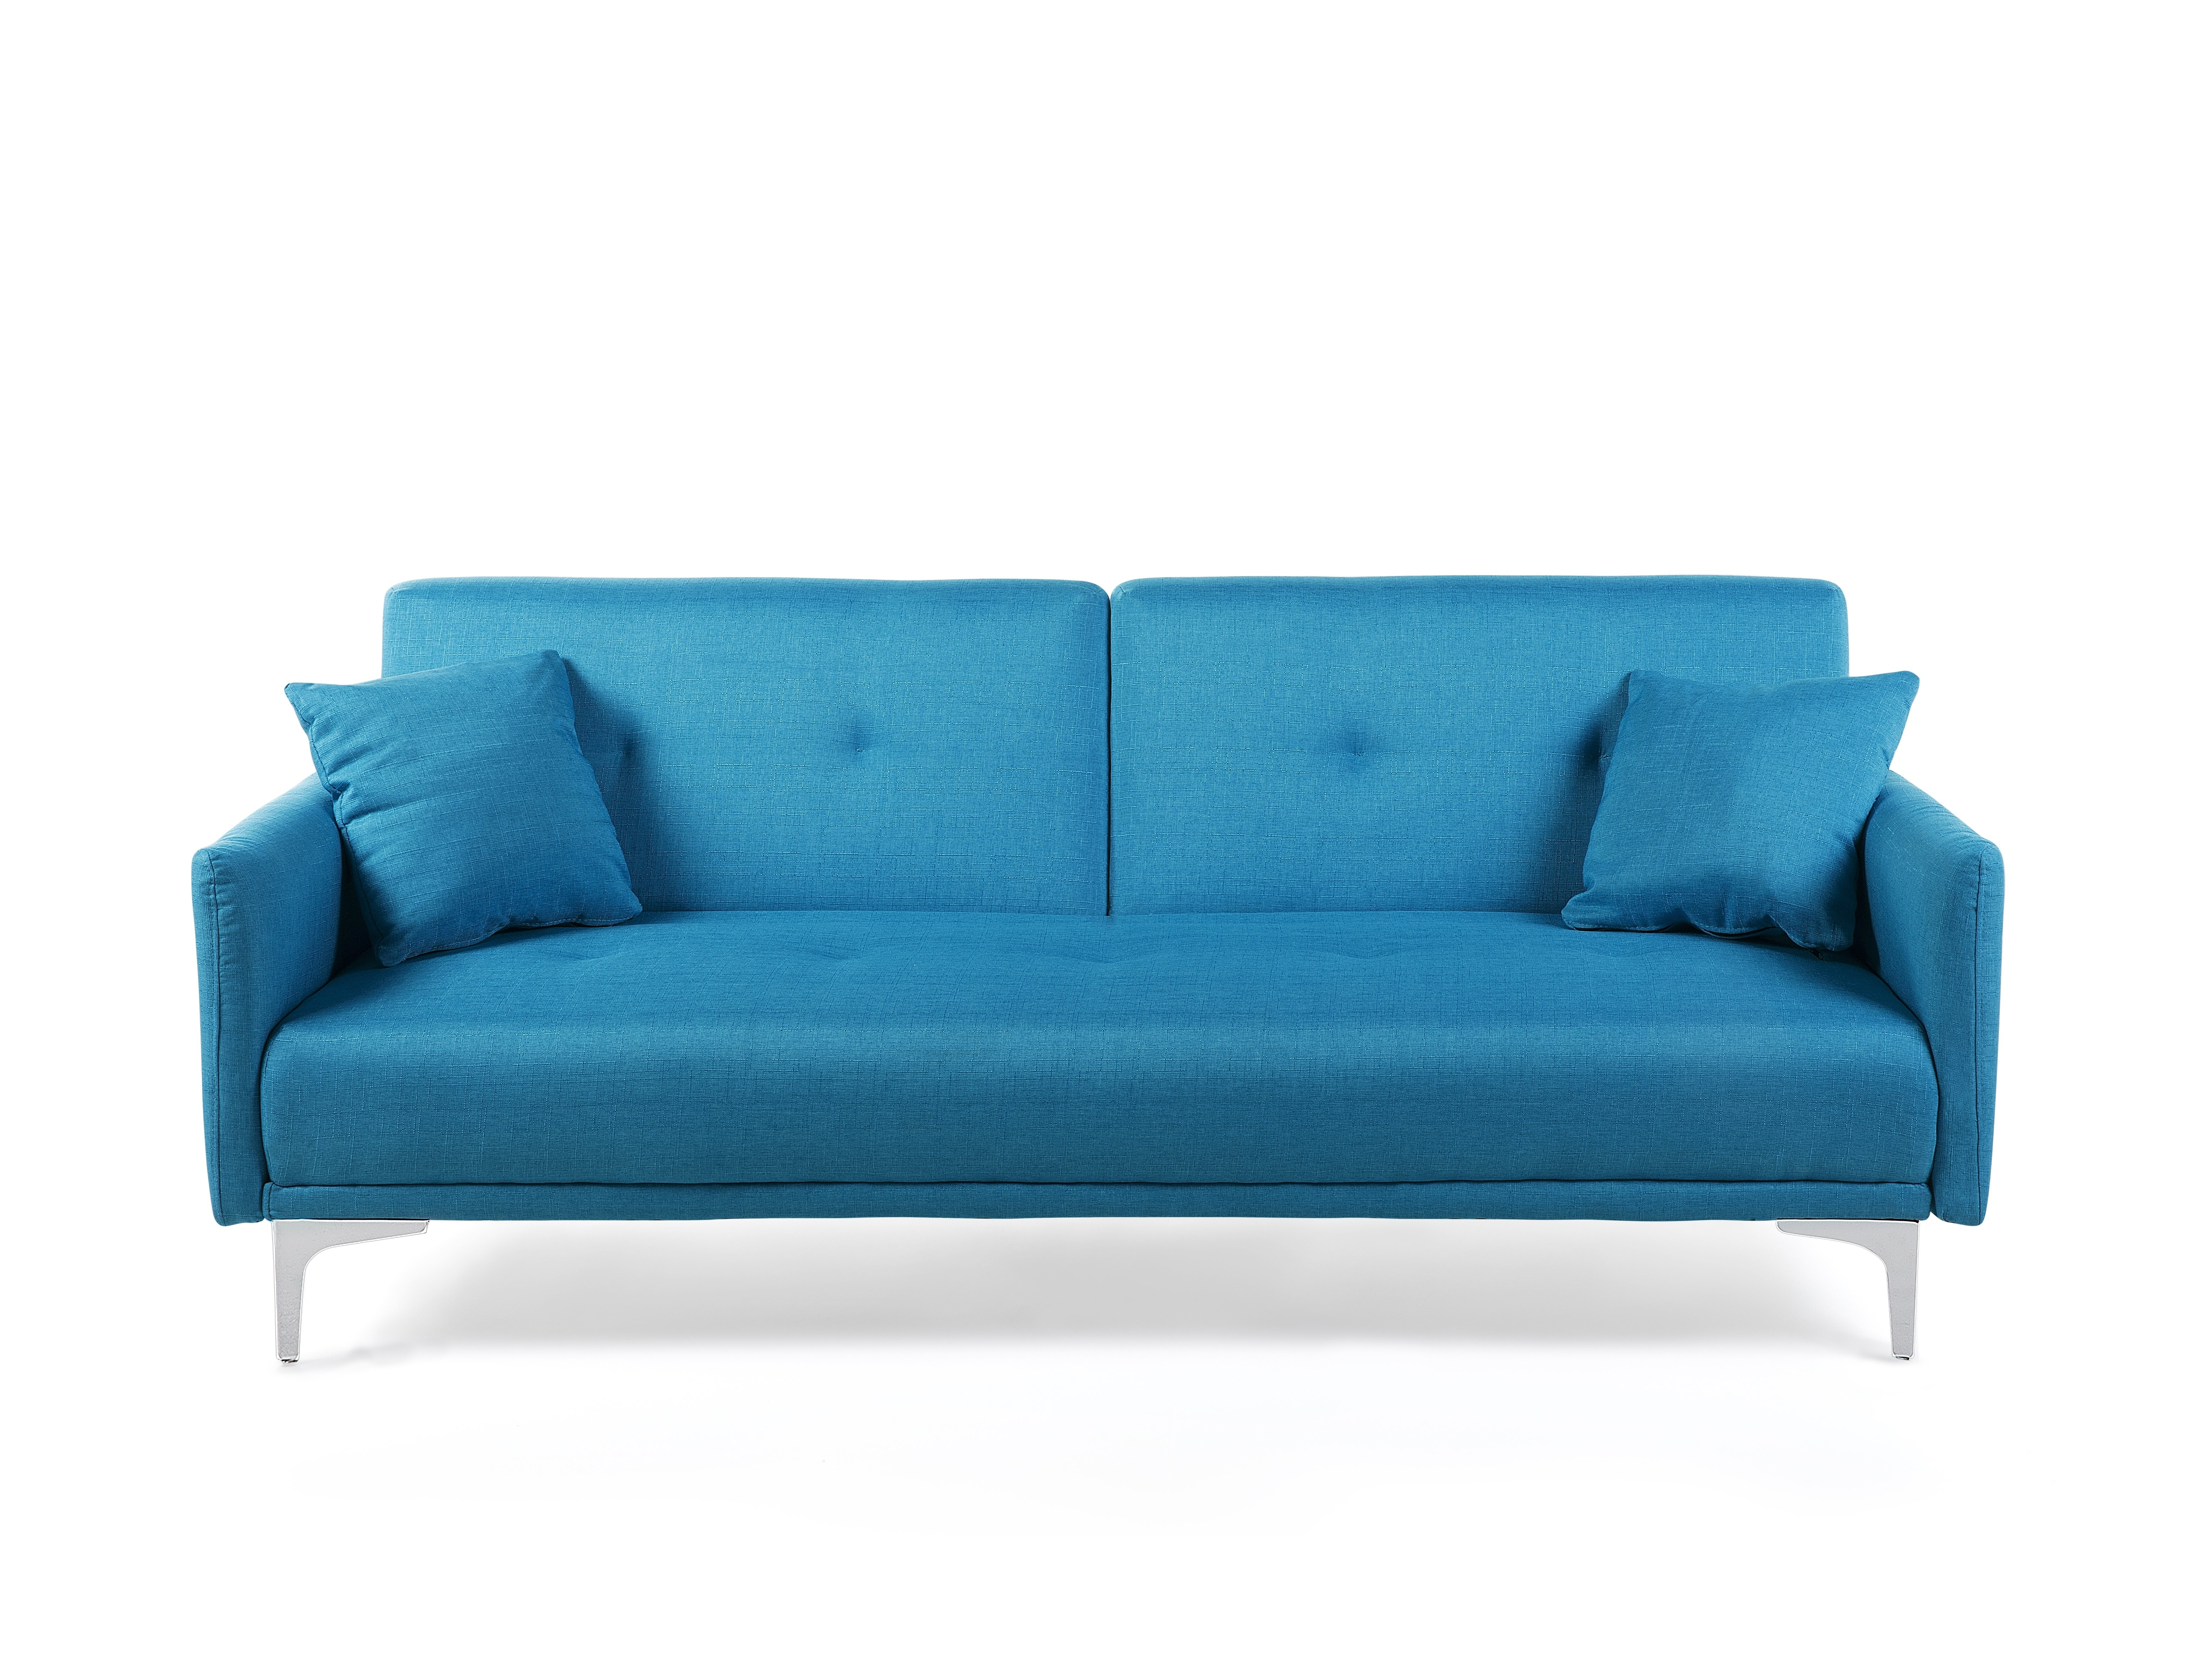 Most Recently Released Turquoise Gem Chandelier Lamps Within Living Room : Turquoise Couch L Couch Teal Couch Vinyl Couch Light (View 17 of 20)